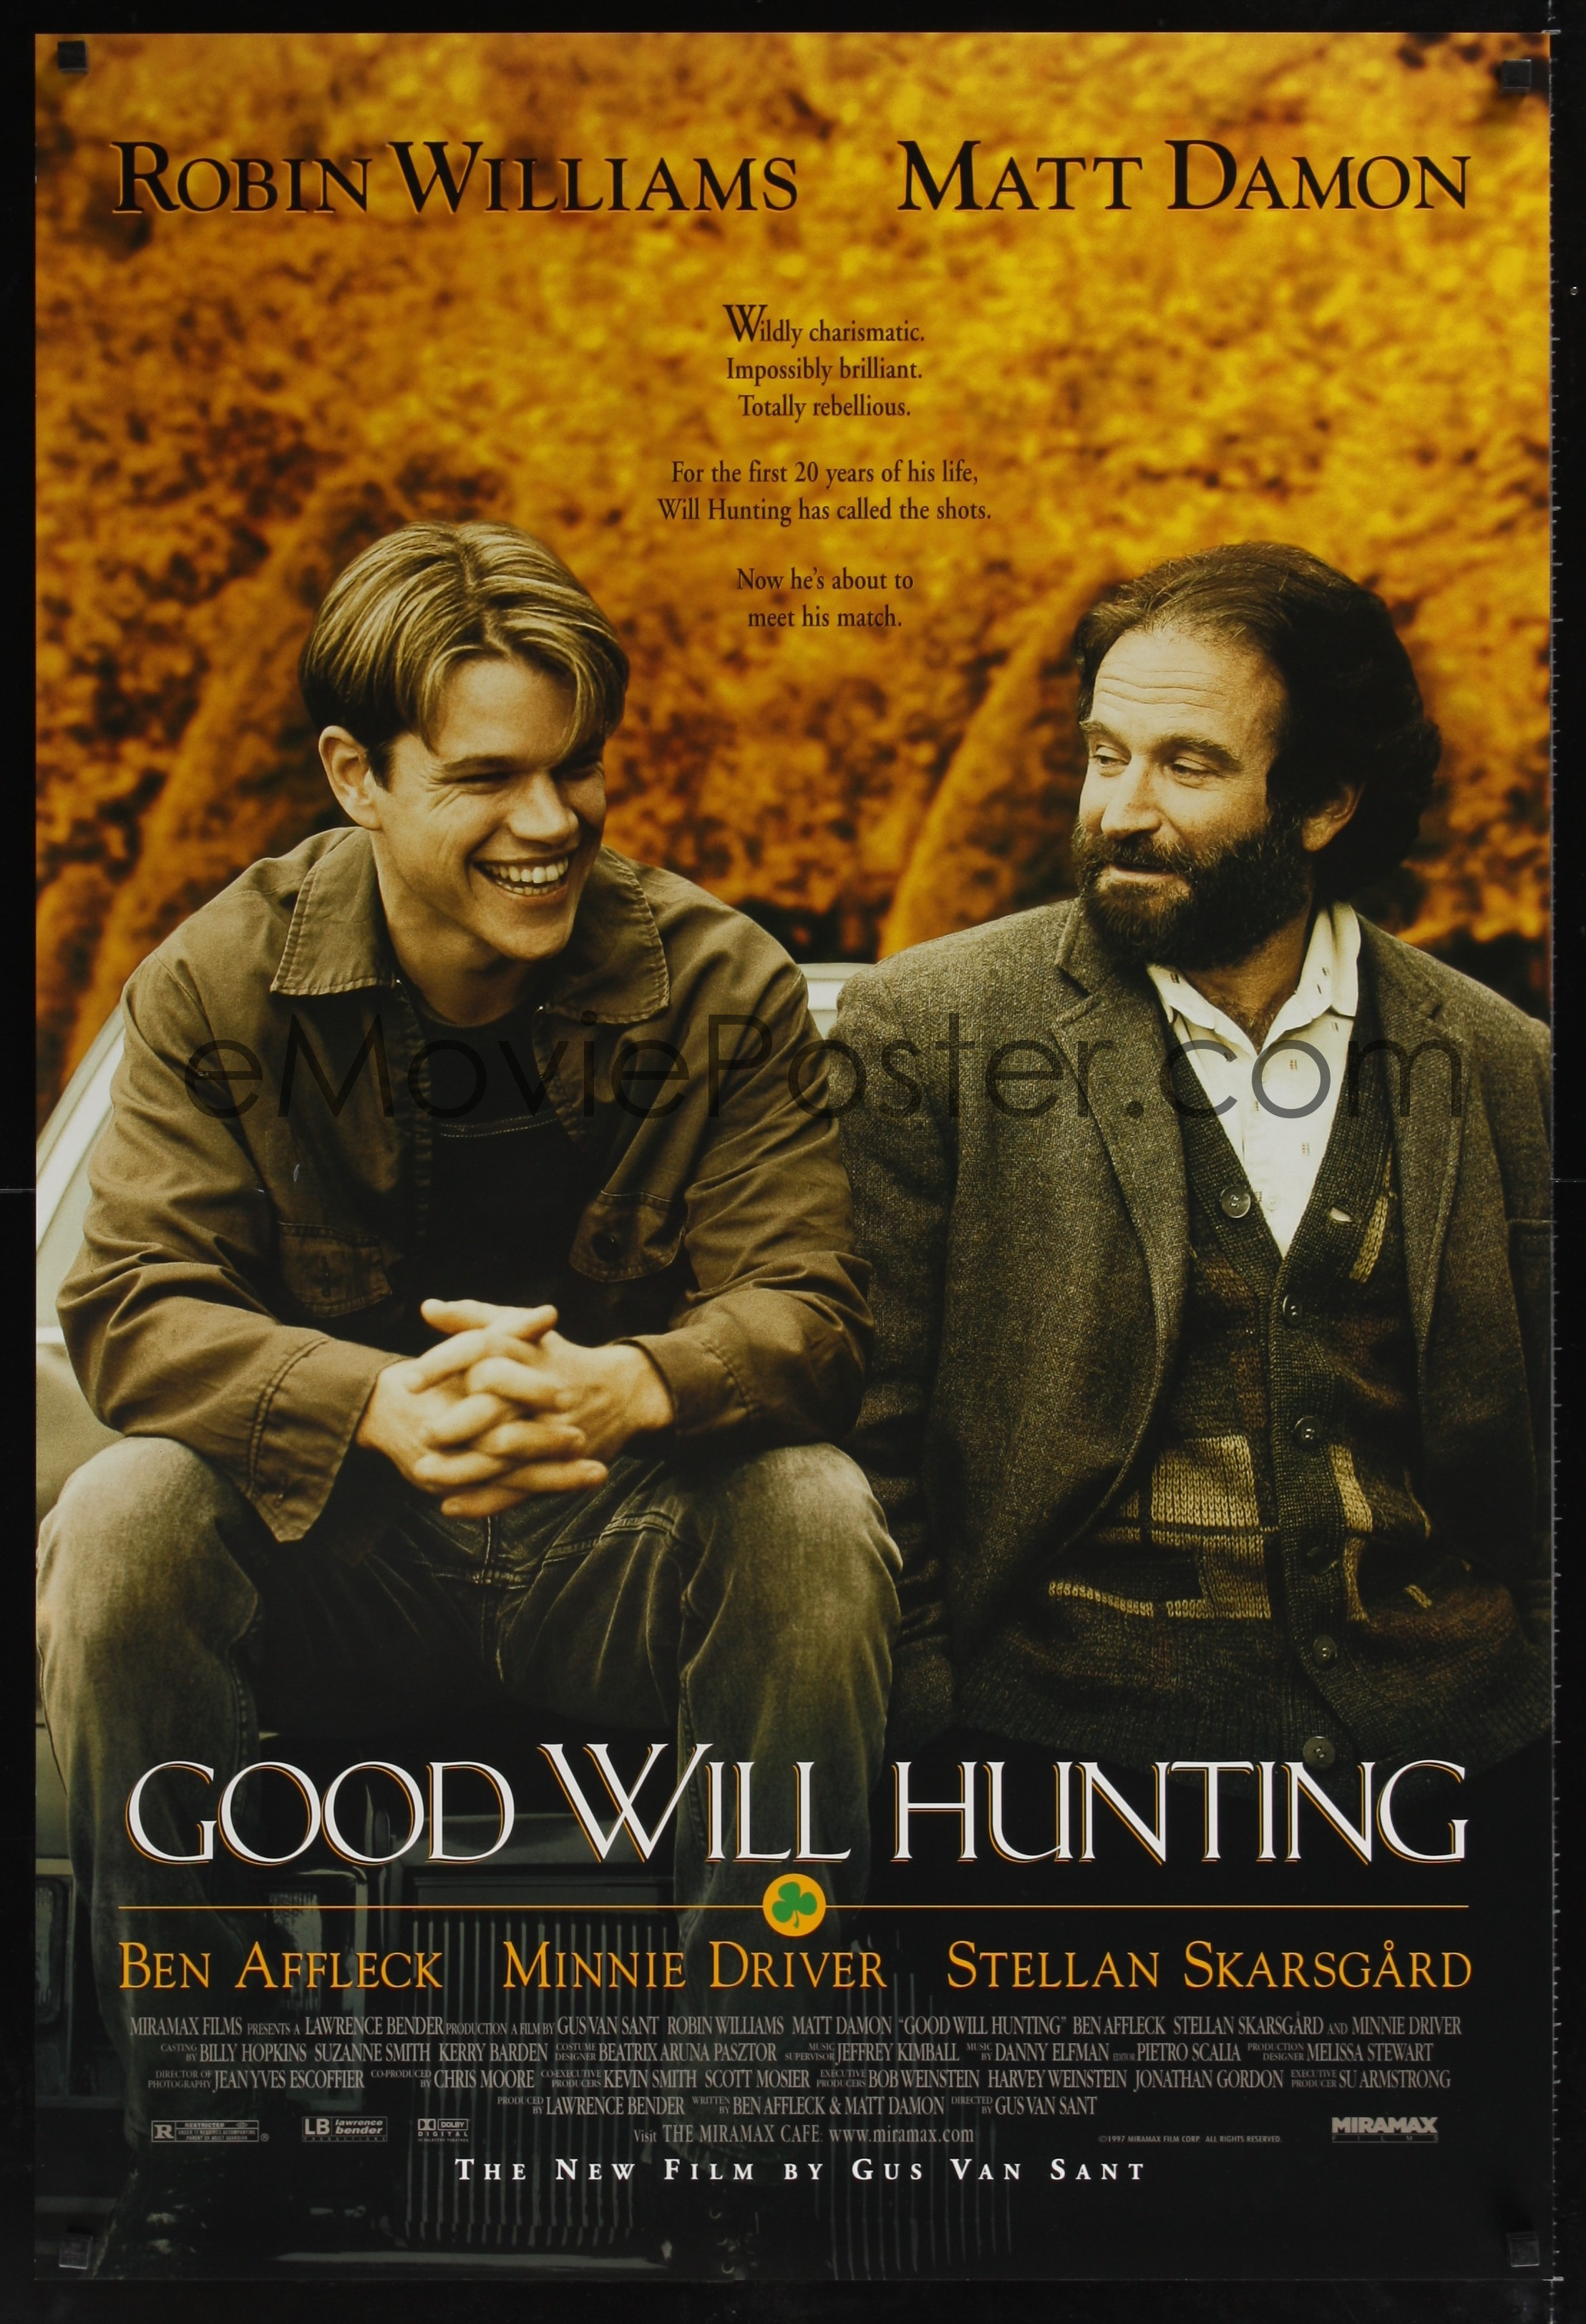 essay on good will hunting movie Psychosocial assessment on good will hunting essays  movie analysis  sociological perspective: good will hunting soc103 a ms lim siow fei dier  pulatov.